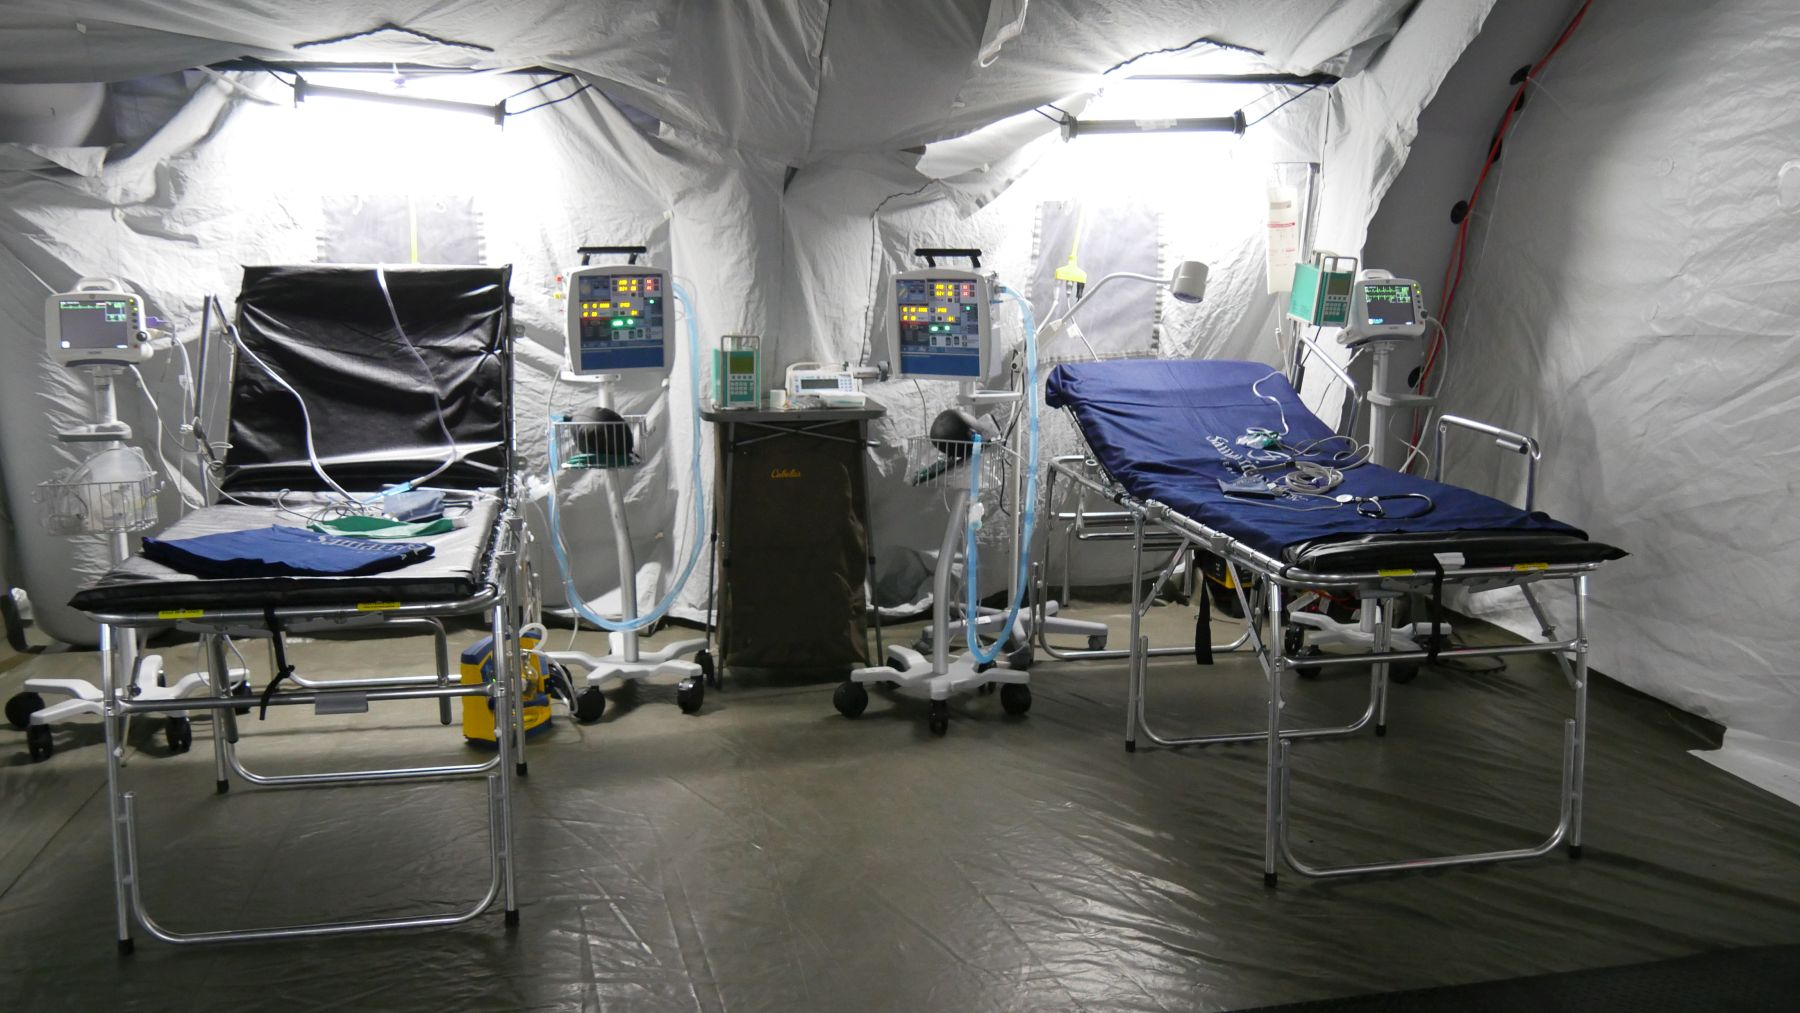 At maximum capacity, the emergency field hospital staff can treat more than 100 patients, perform 15 to 25 surgeries daily, and function as a full hospital.